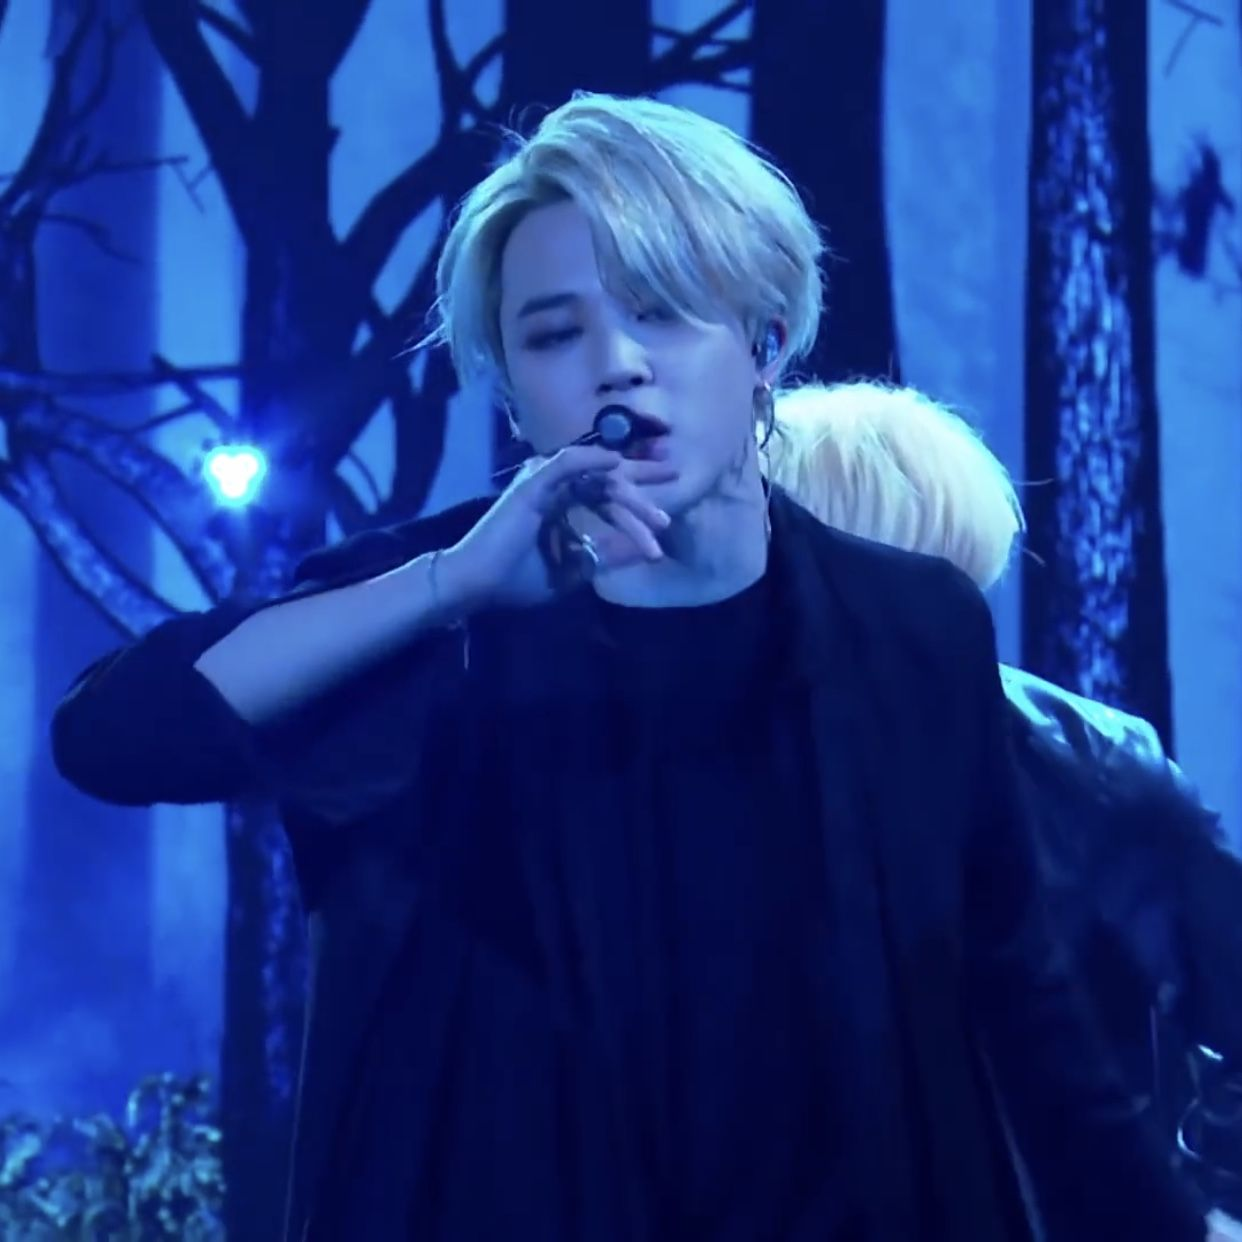 ic: Close up of Jimin during BTS's performance of 'Black Swan' at The Late Late Show